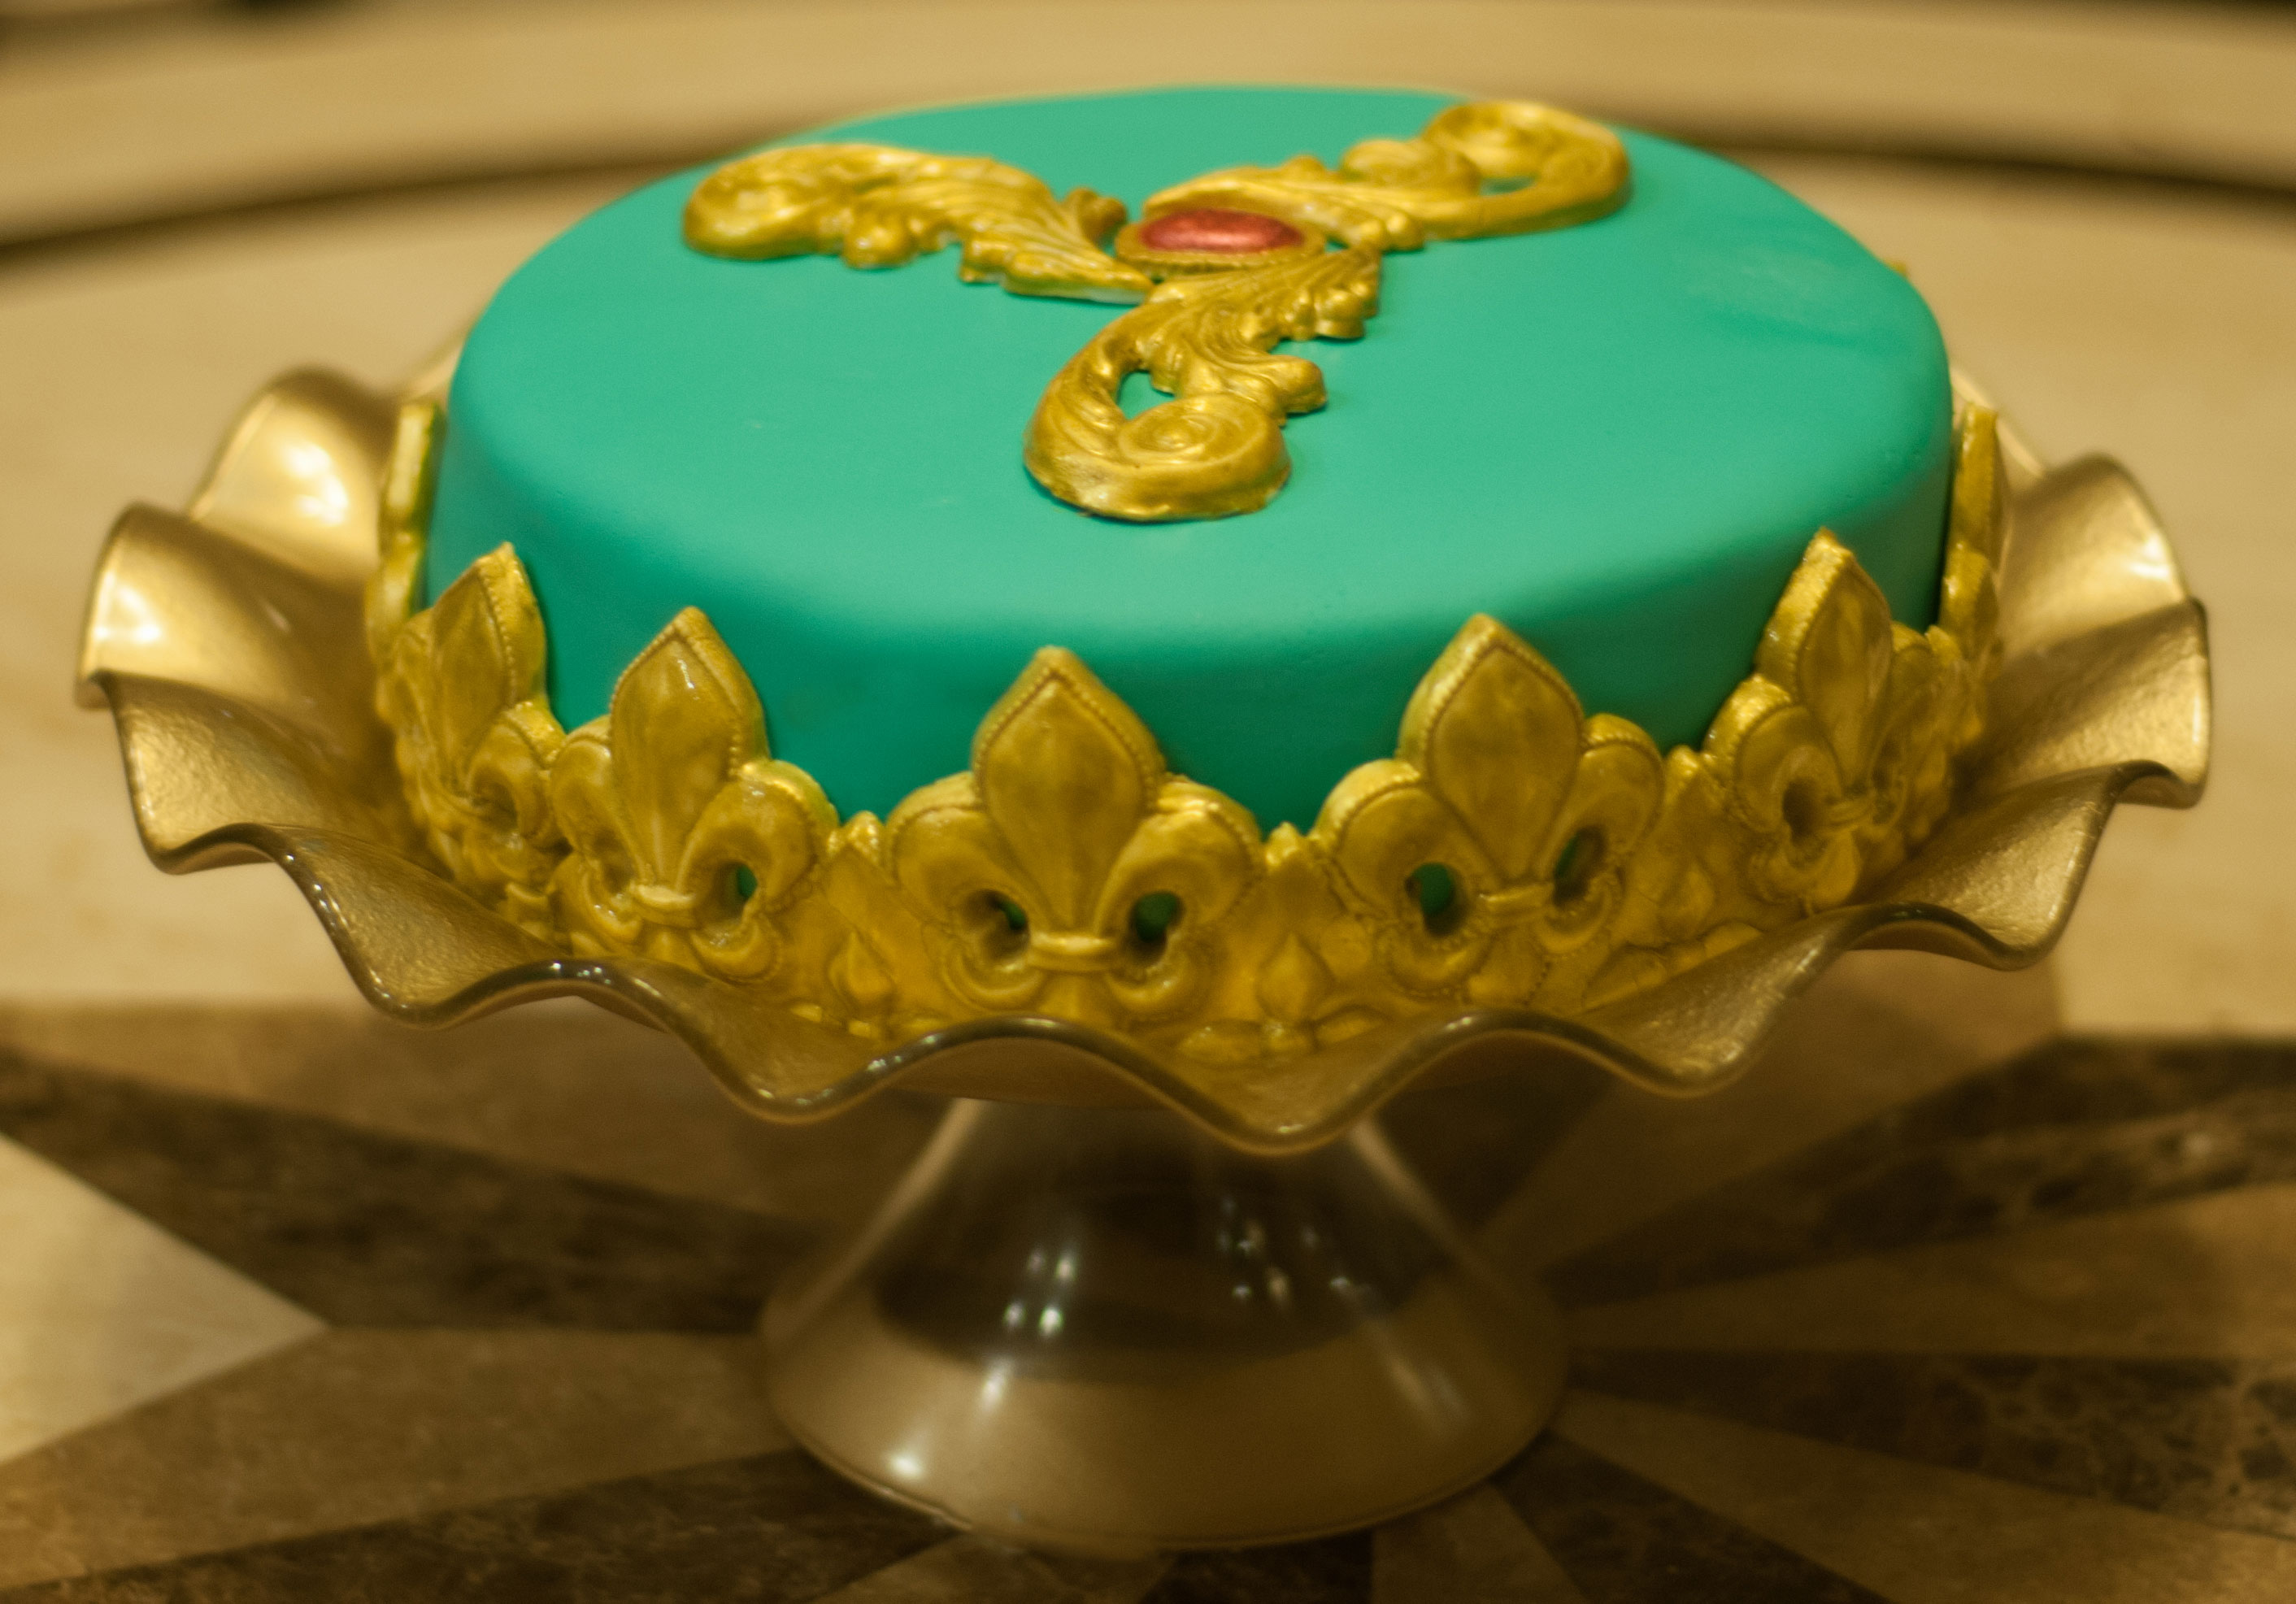 Teal Embroided Cake